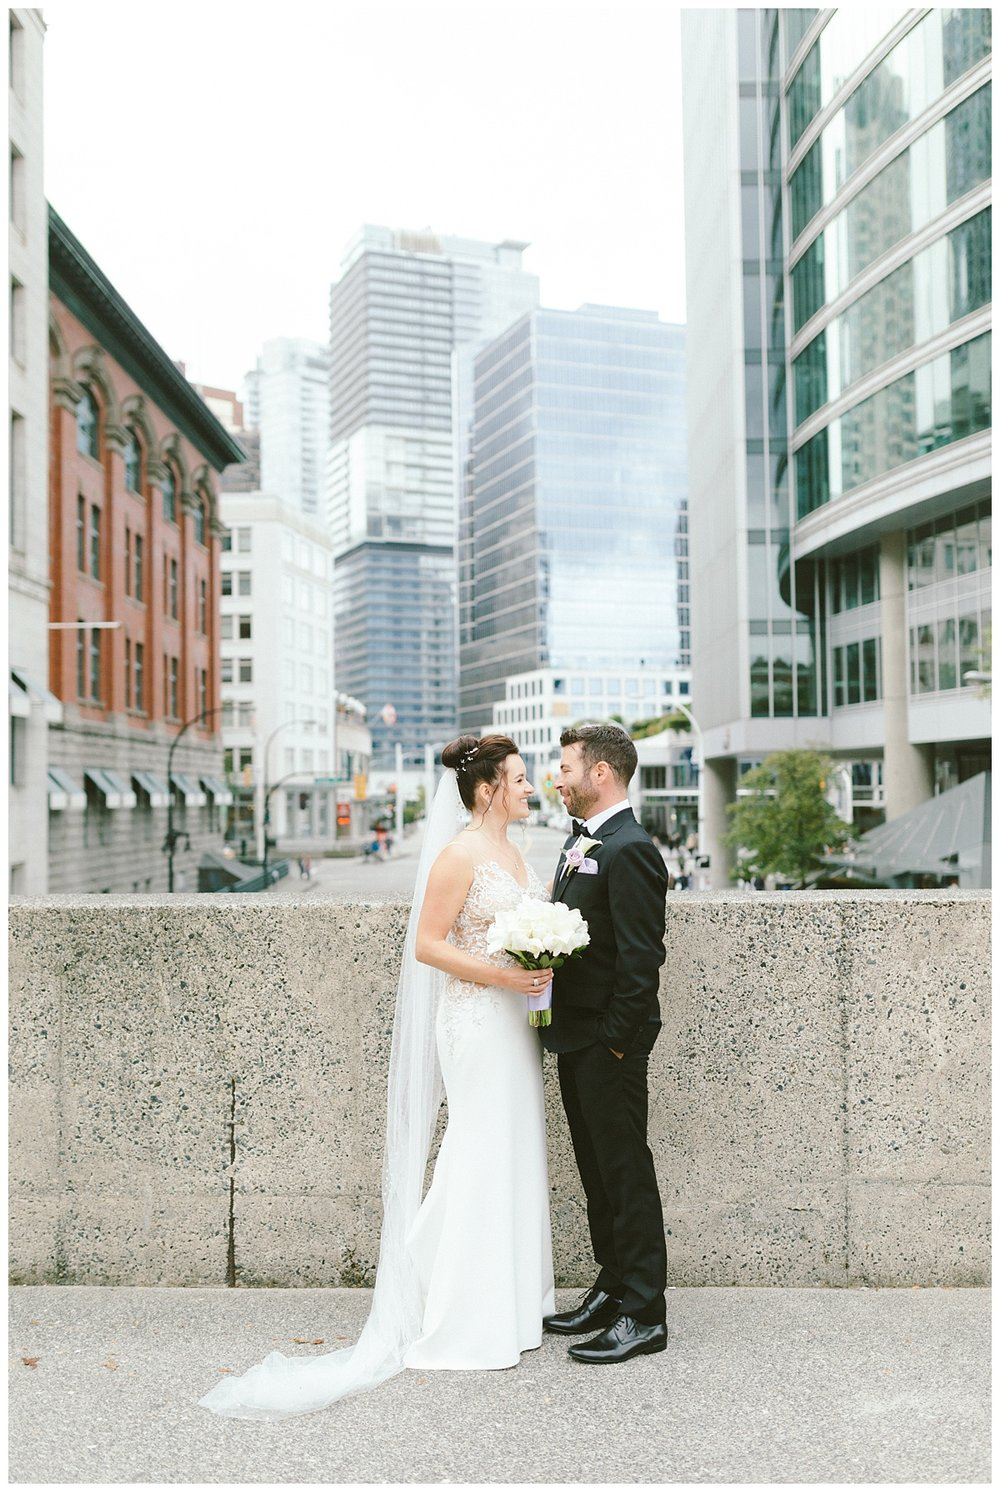 Wedding prewedding photos downtown Vancouver BC (Gastown)